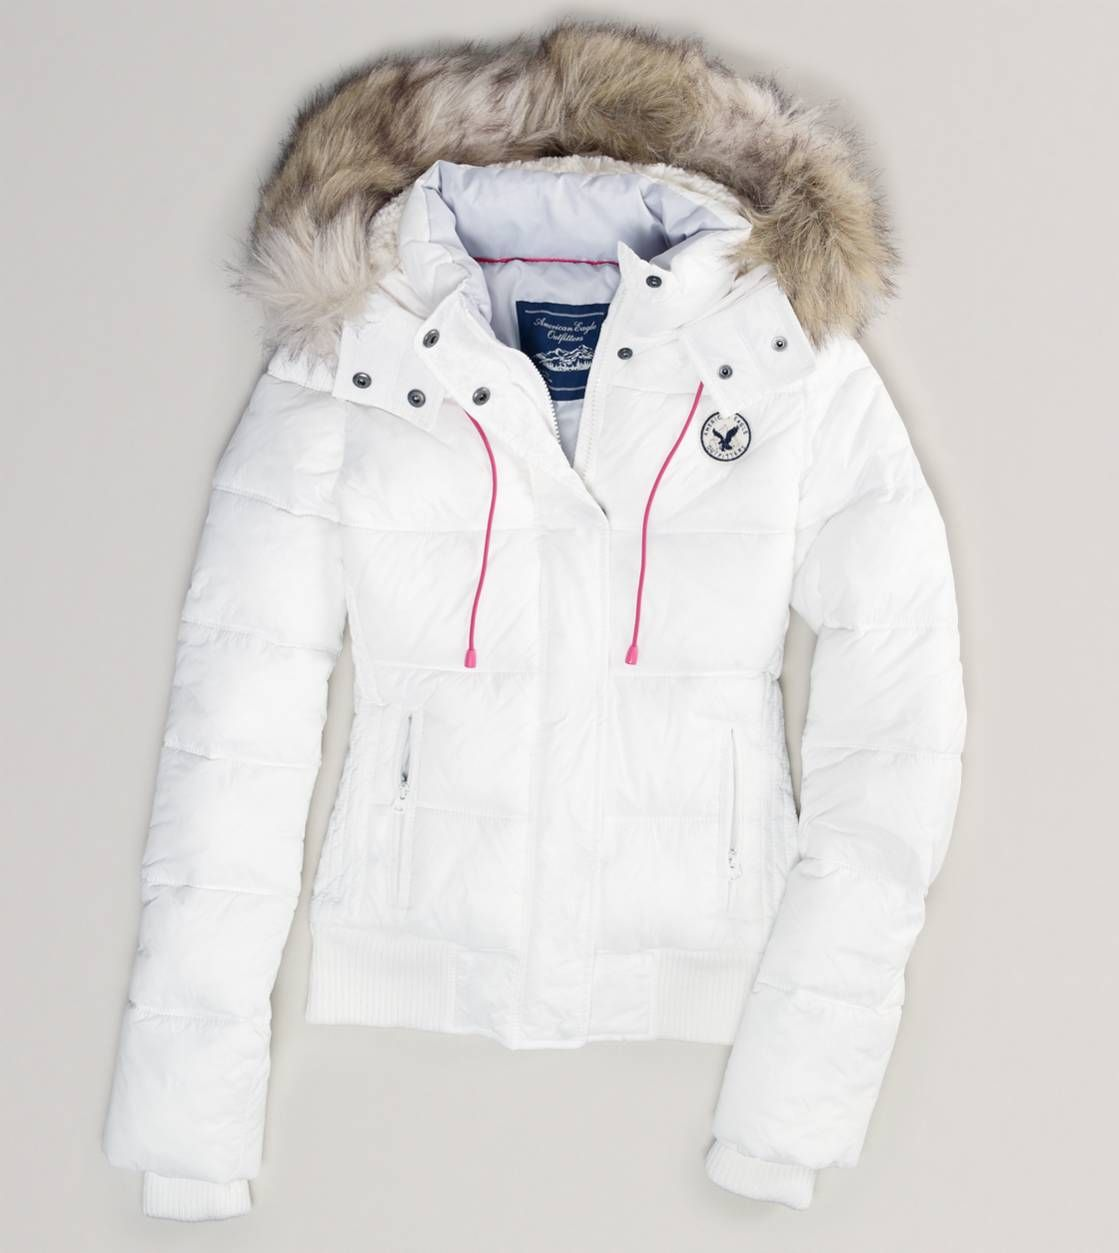 Clearance Outerwear American Eagle Outfitters Puffer Jacket Fur Hood Clothes Puffer Jacket Style [ 1253 x 1119 Pixel ]